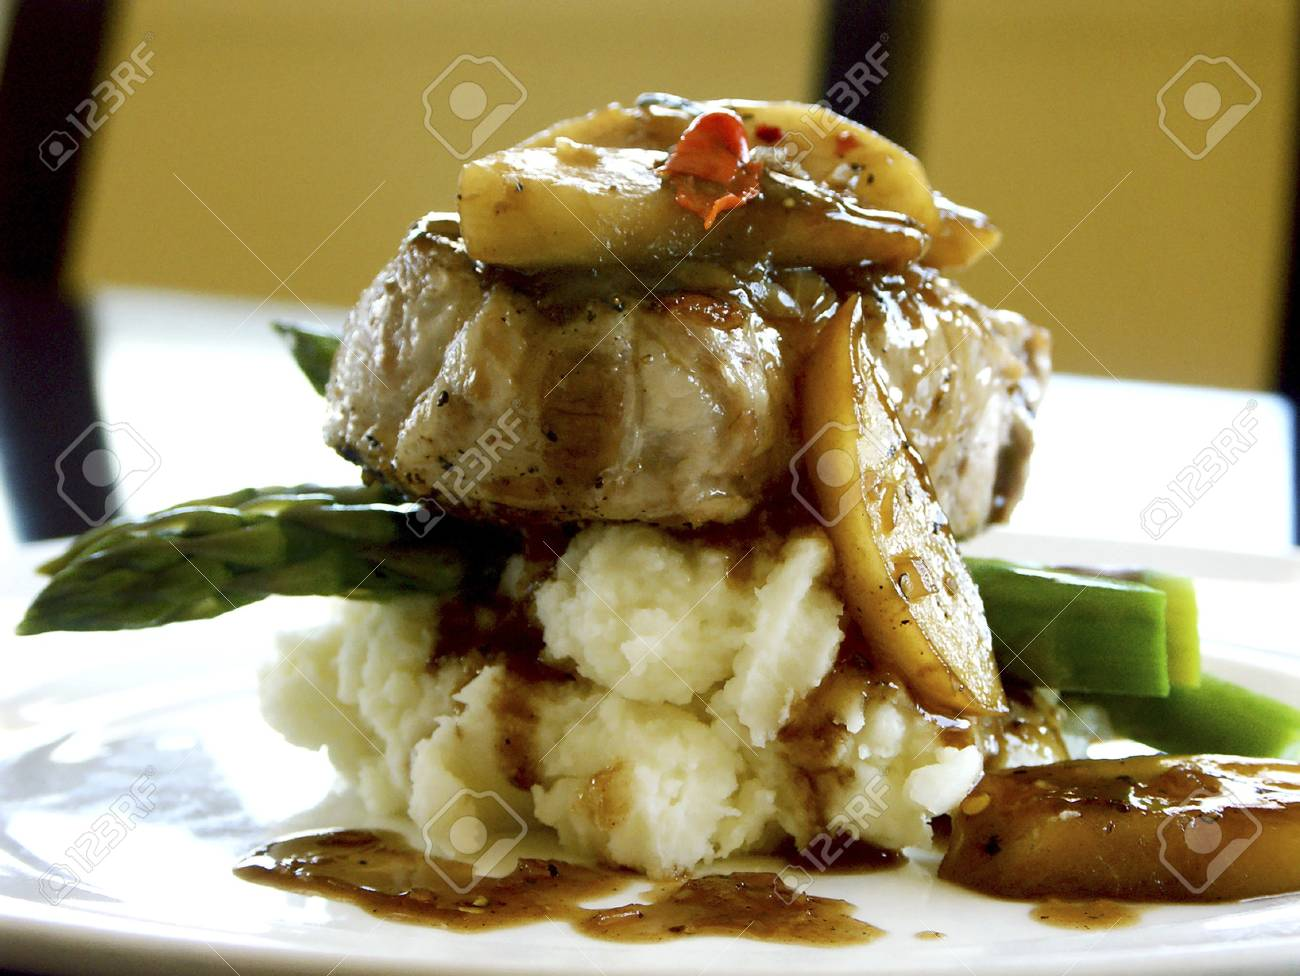 Roast pork loin with apple compote Stock Photo - 8278825